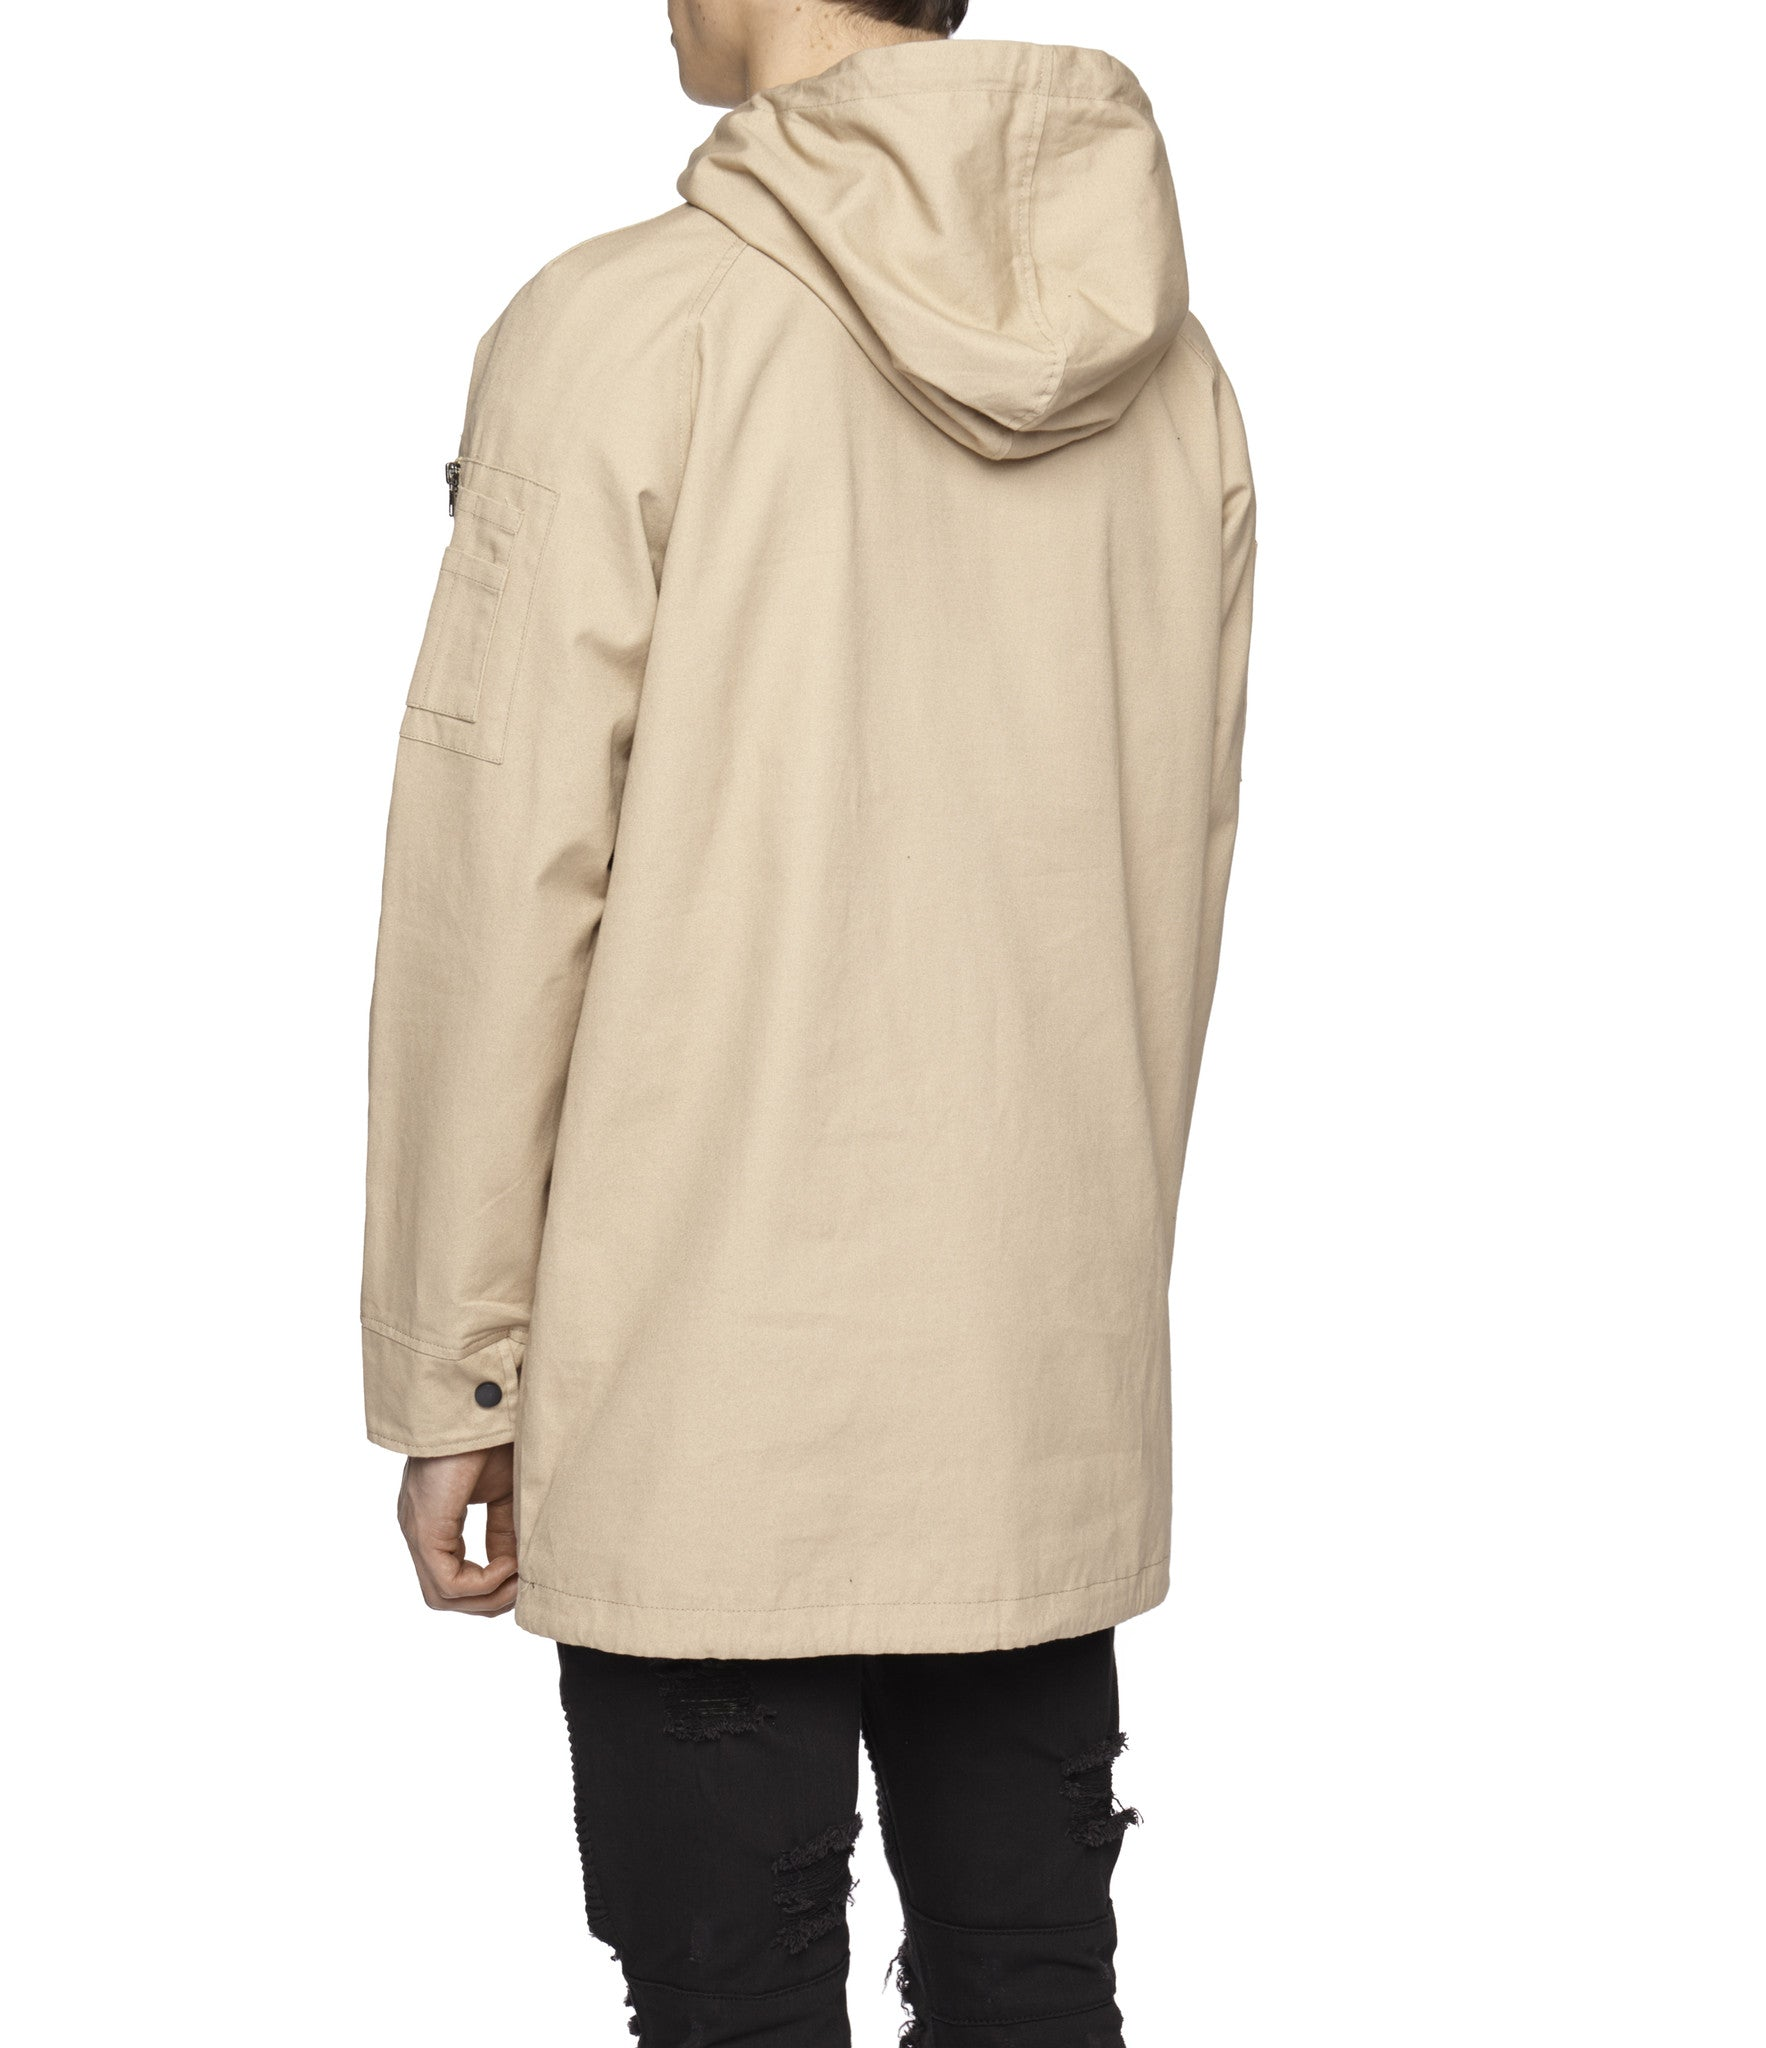 D22 Hooded Pullover Anorak  - Beige - underated london - underatedco - 5